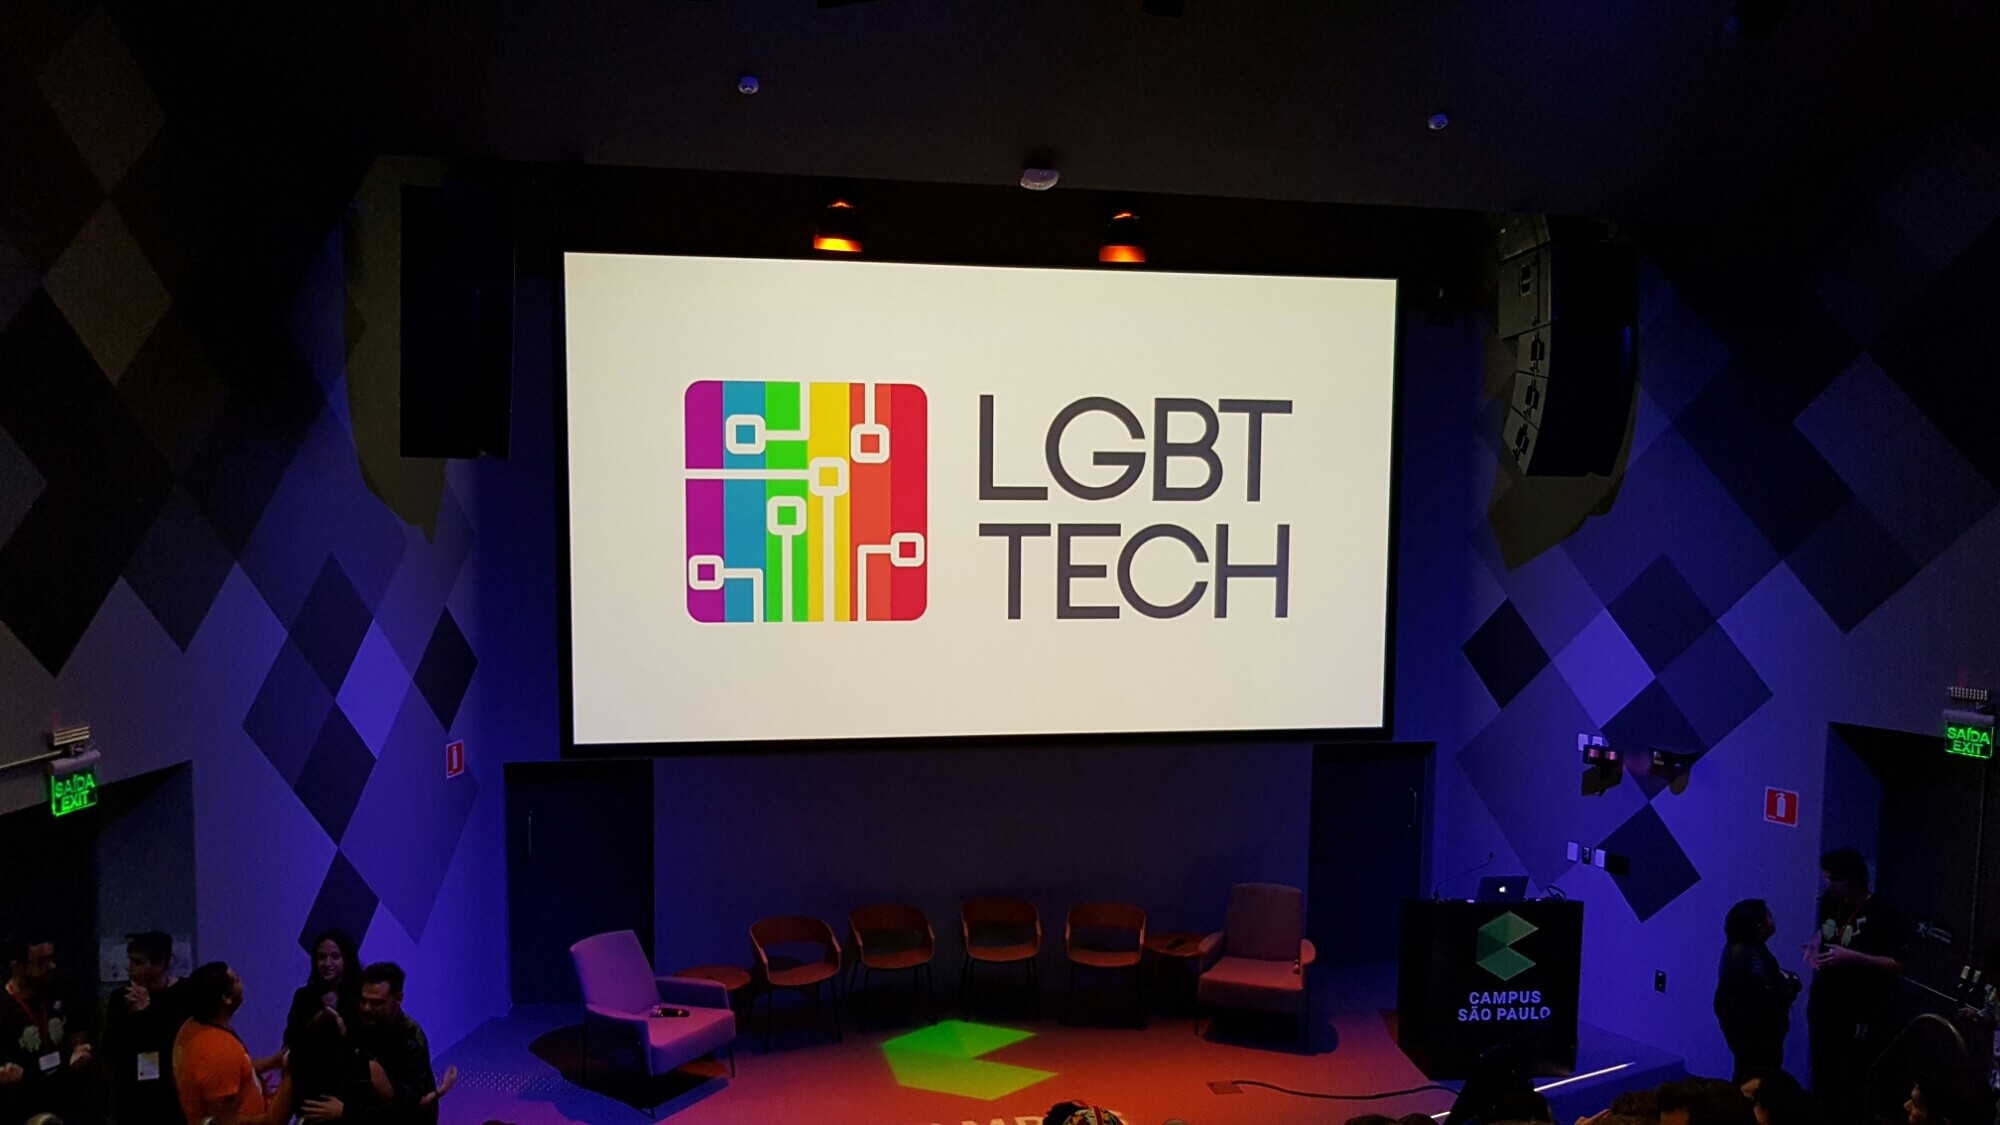 Google Campus recebe o LGBT TECH